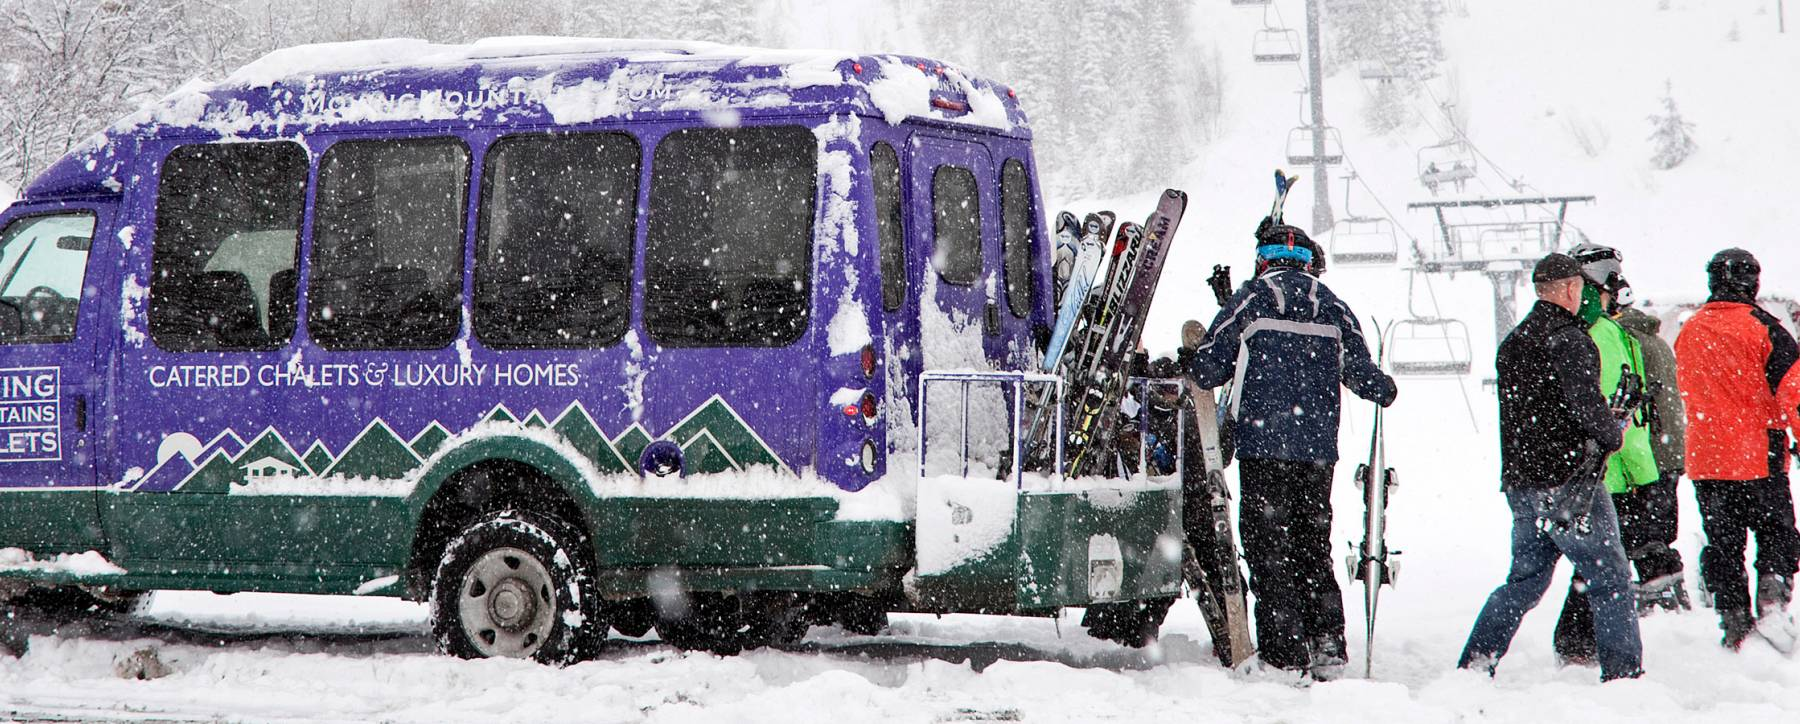 Luxury Vail rental homes include private shuttle service